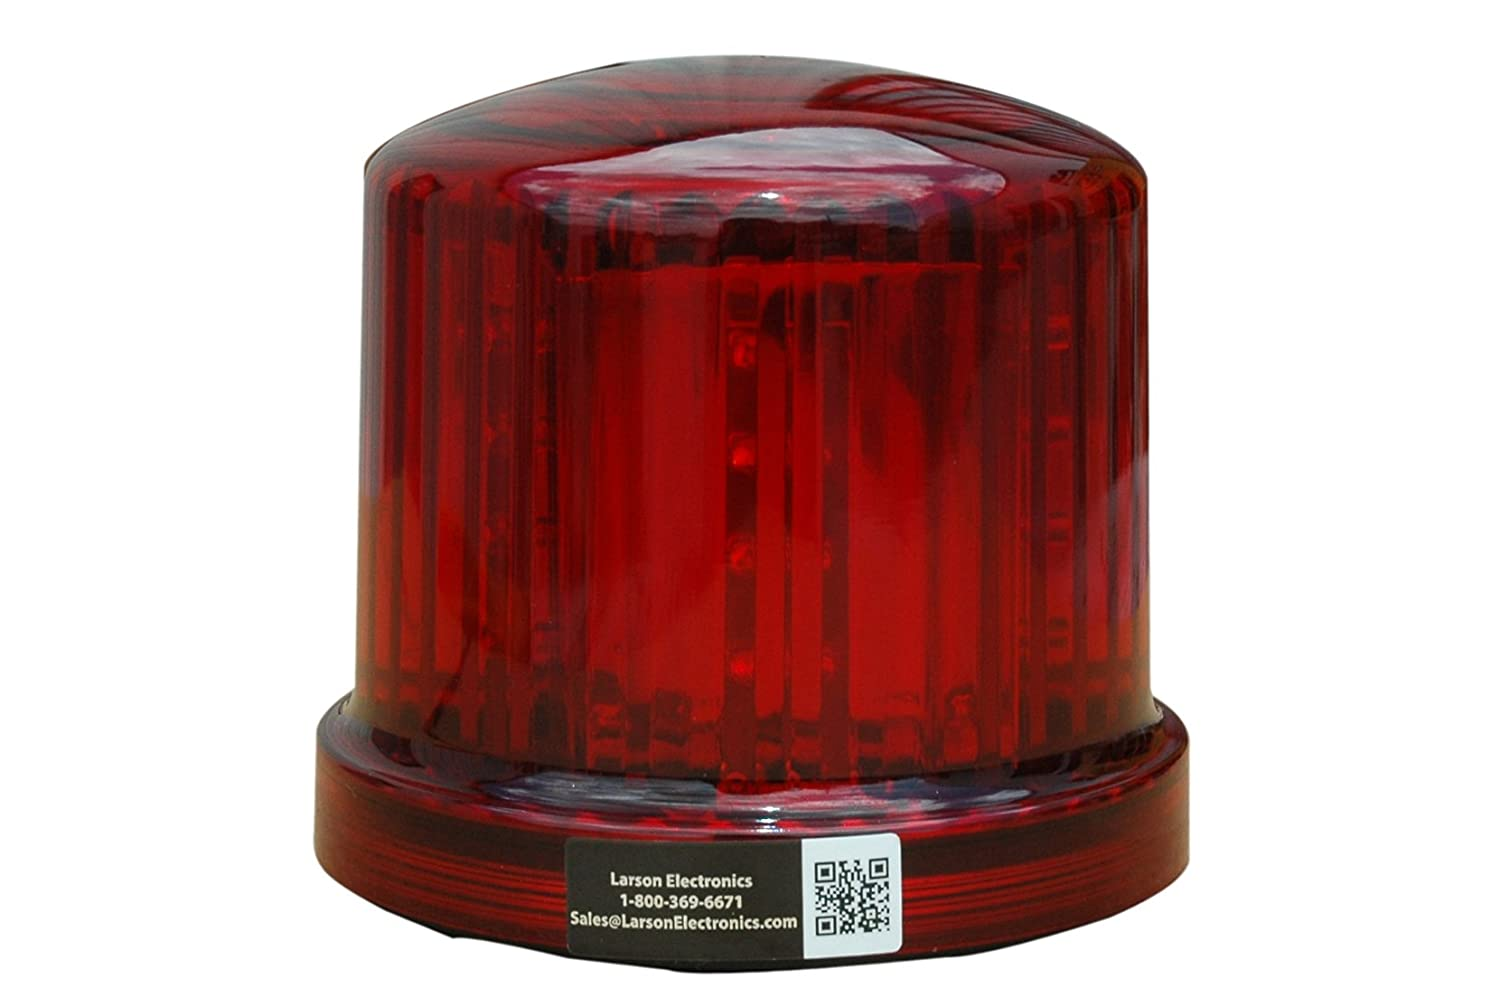 Larson Electronics SL-360-M-R Red LED 360-Degree Beacon with Magnetic Base